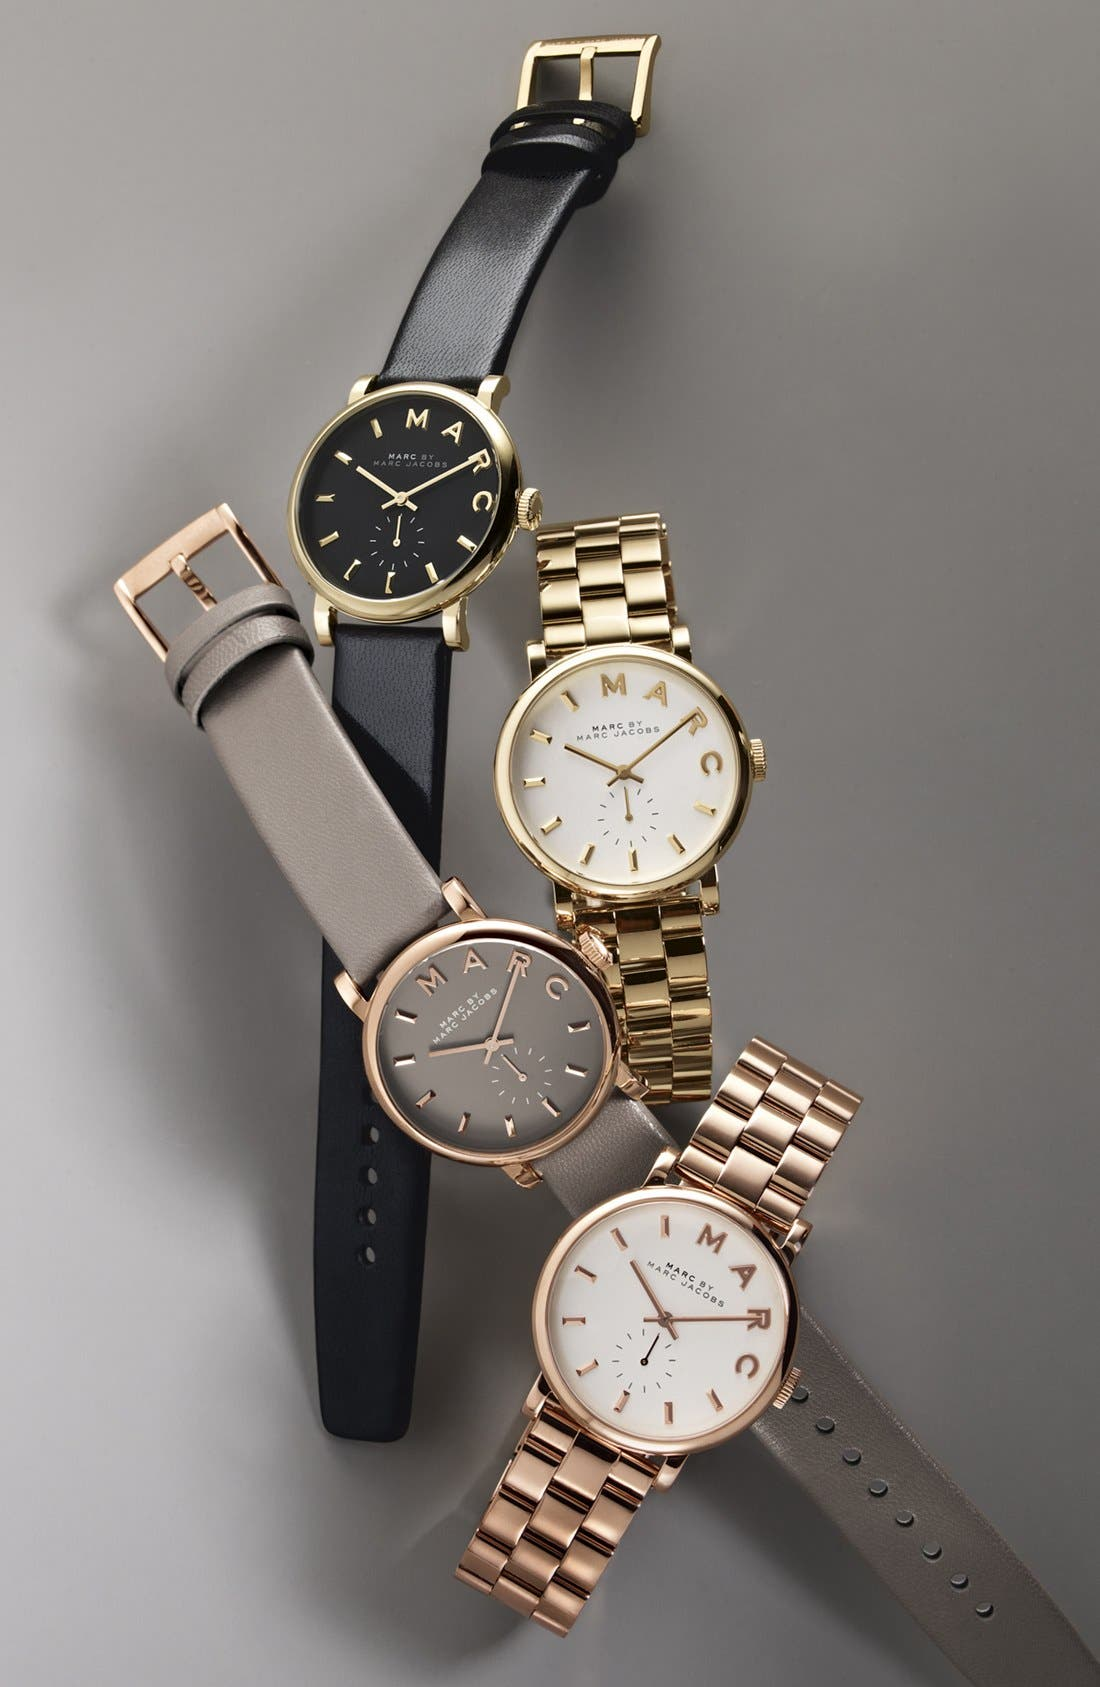 MARC JACOBS, 'Baker' Leather Strap Watch, 37mm, Alternate thumbnail 7, color, 001